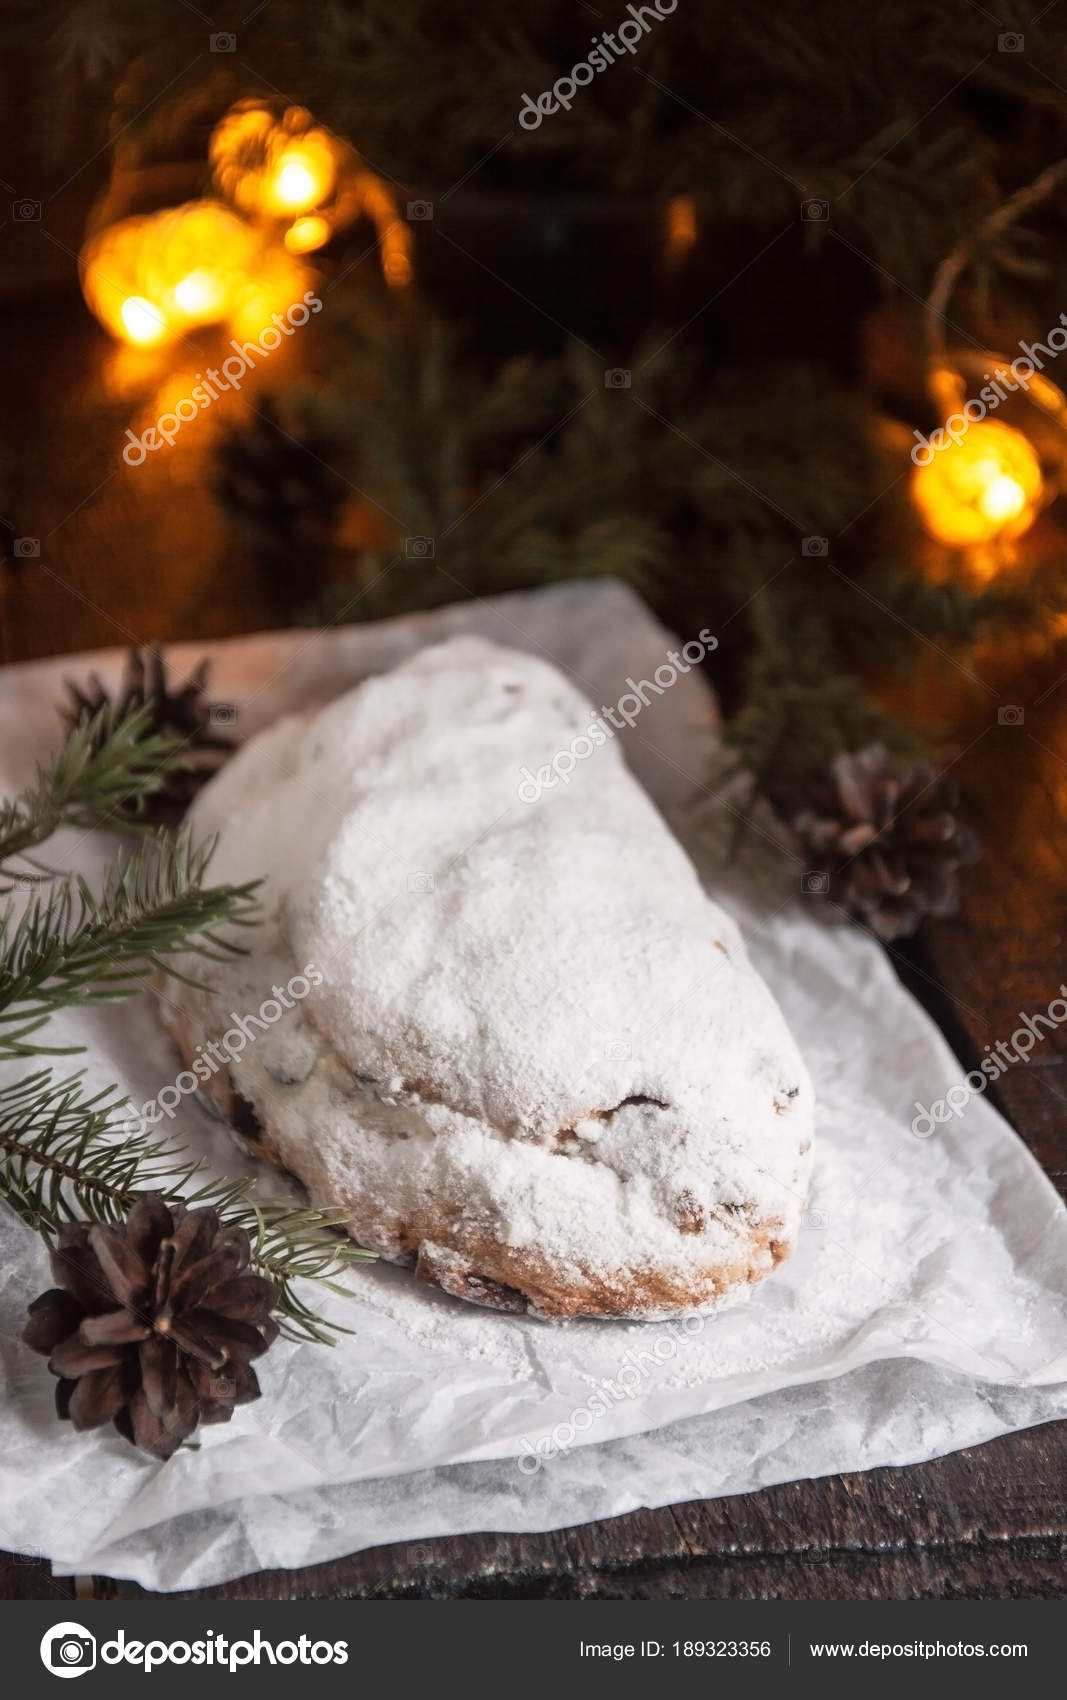 Dresden Stollen is a Traditional German Cake with raisins on a l ...